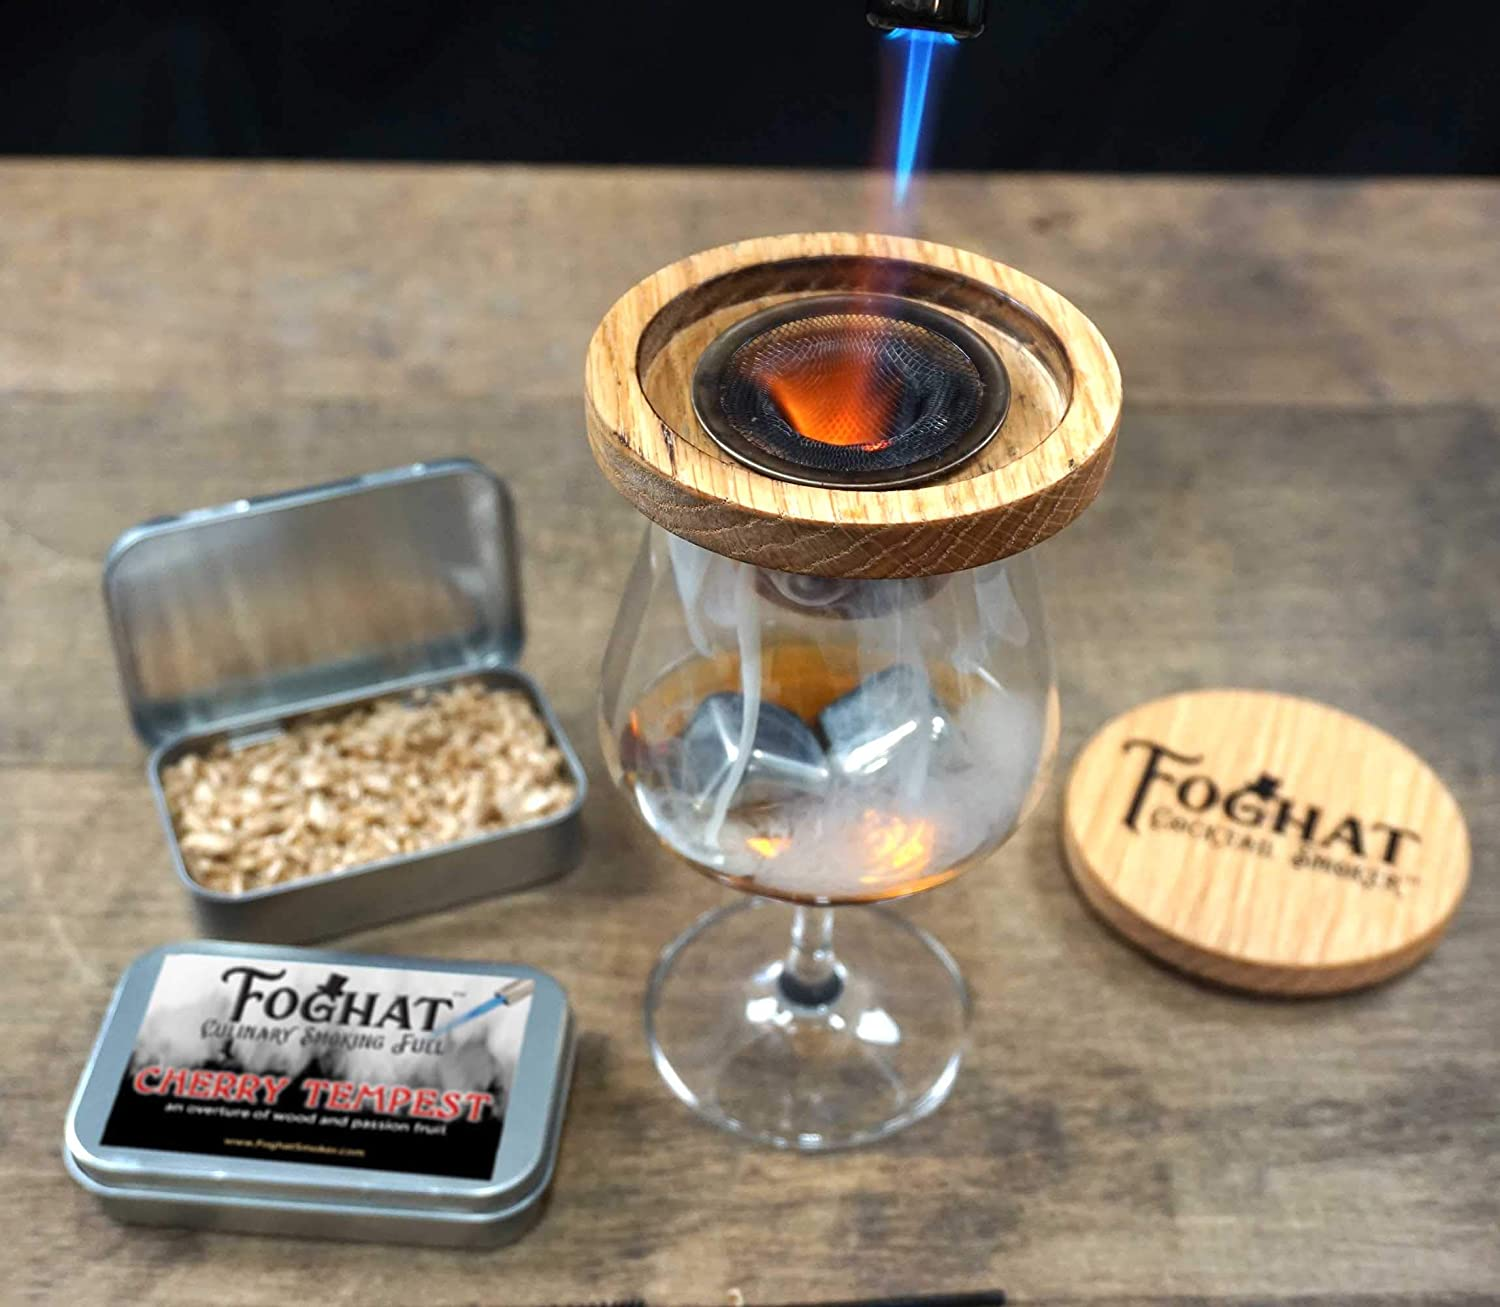 BBQ Foghat Culinary Smoking Fuel Luxury Wood Smoking Chips for Portable Smoker Cherry Tempest Infuse Wine Meats Smoking Gun Glass Cloche or Foghat Cocktail Smoker Cheese Whiskey Salt